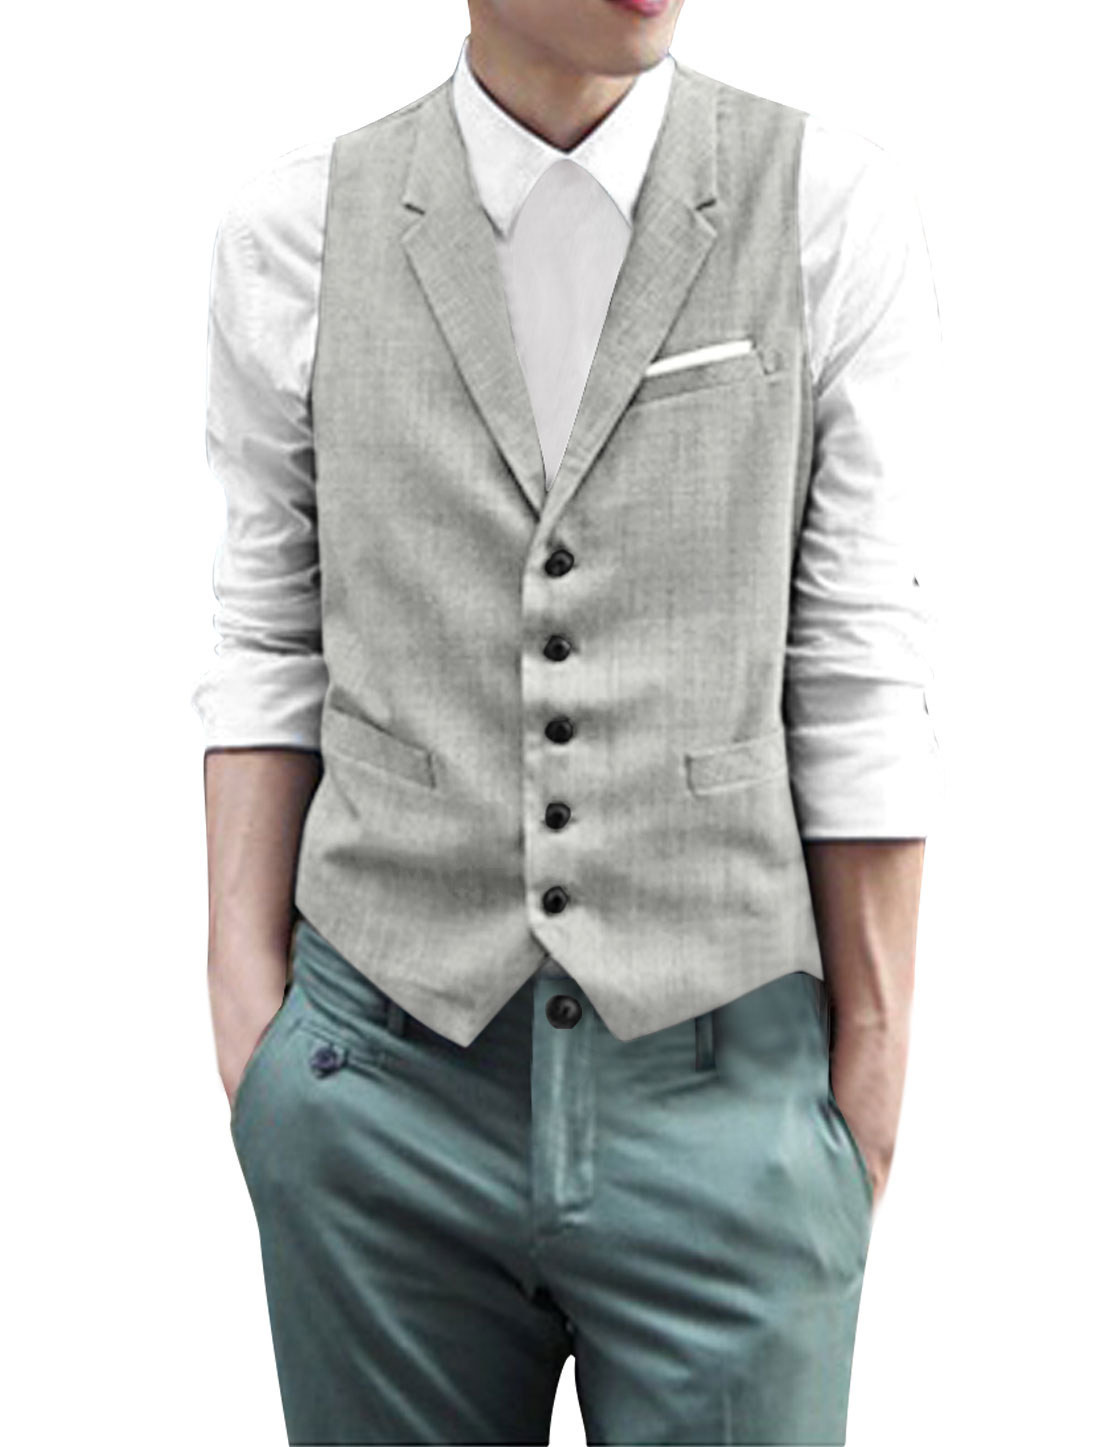 Men Chic Deep V Neck Adjustable Buckle Back Plaids Vest Gray S